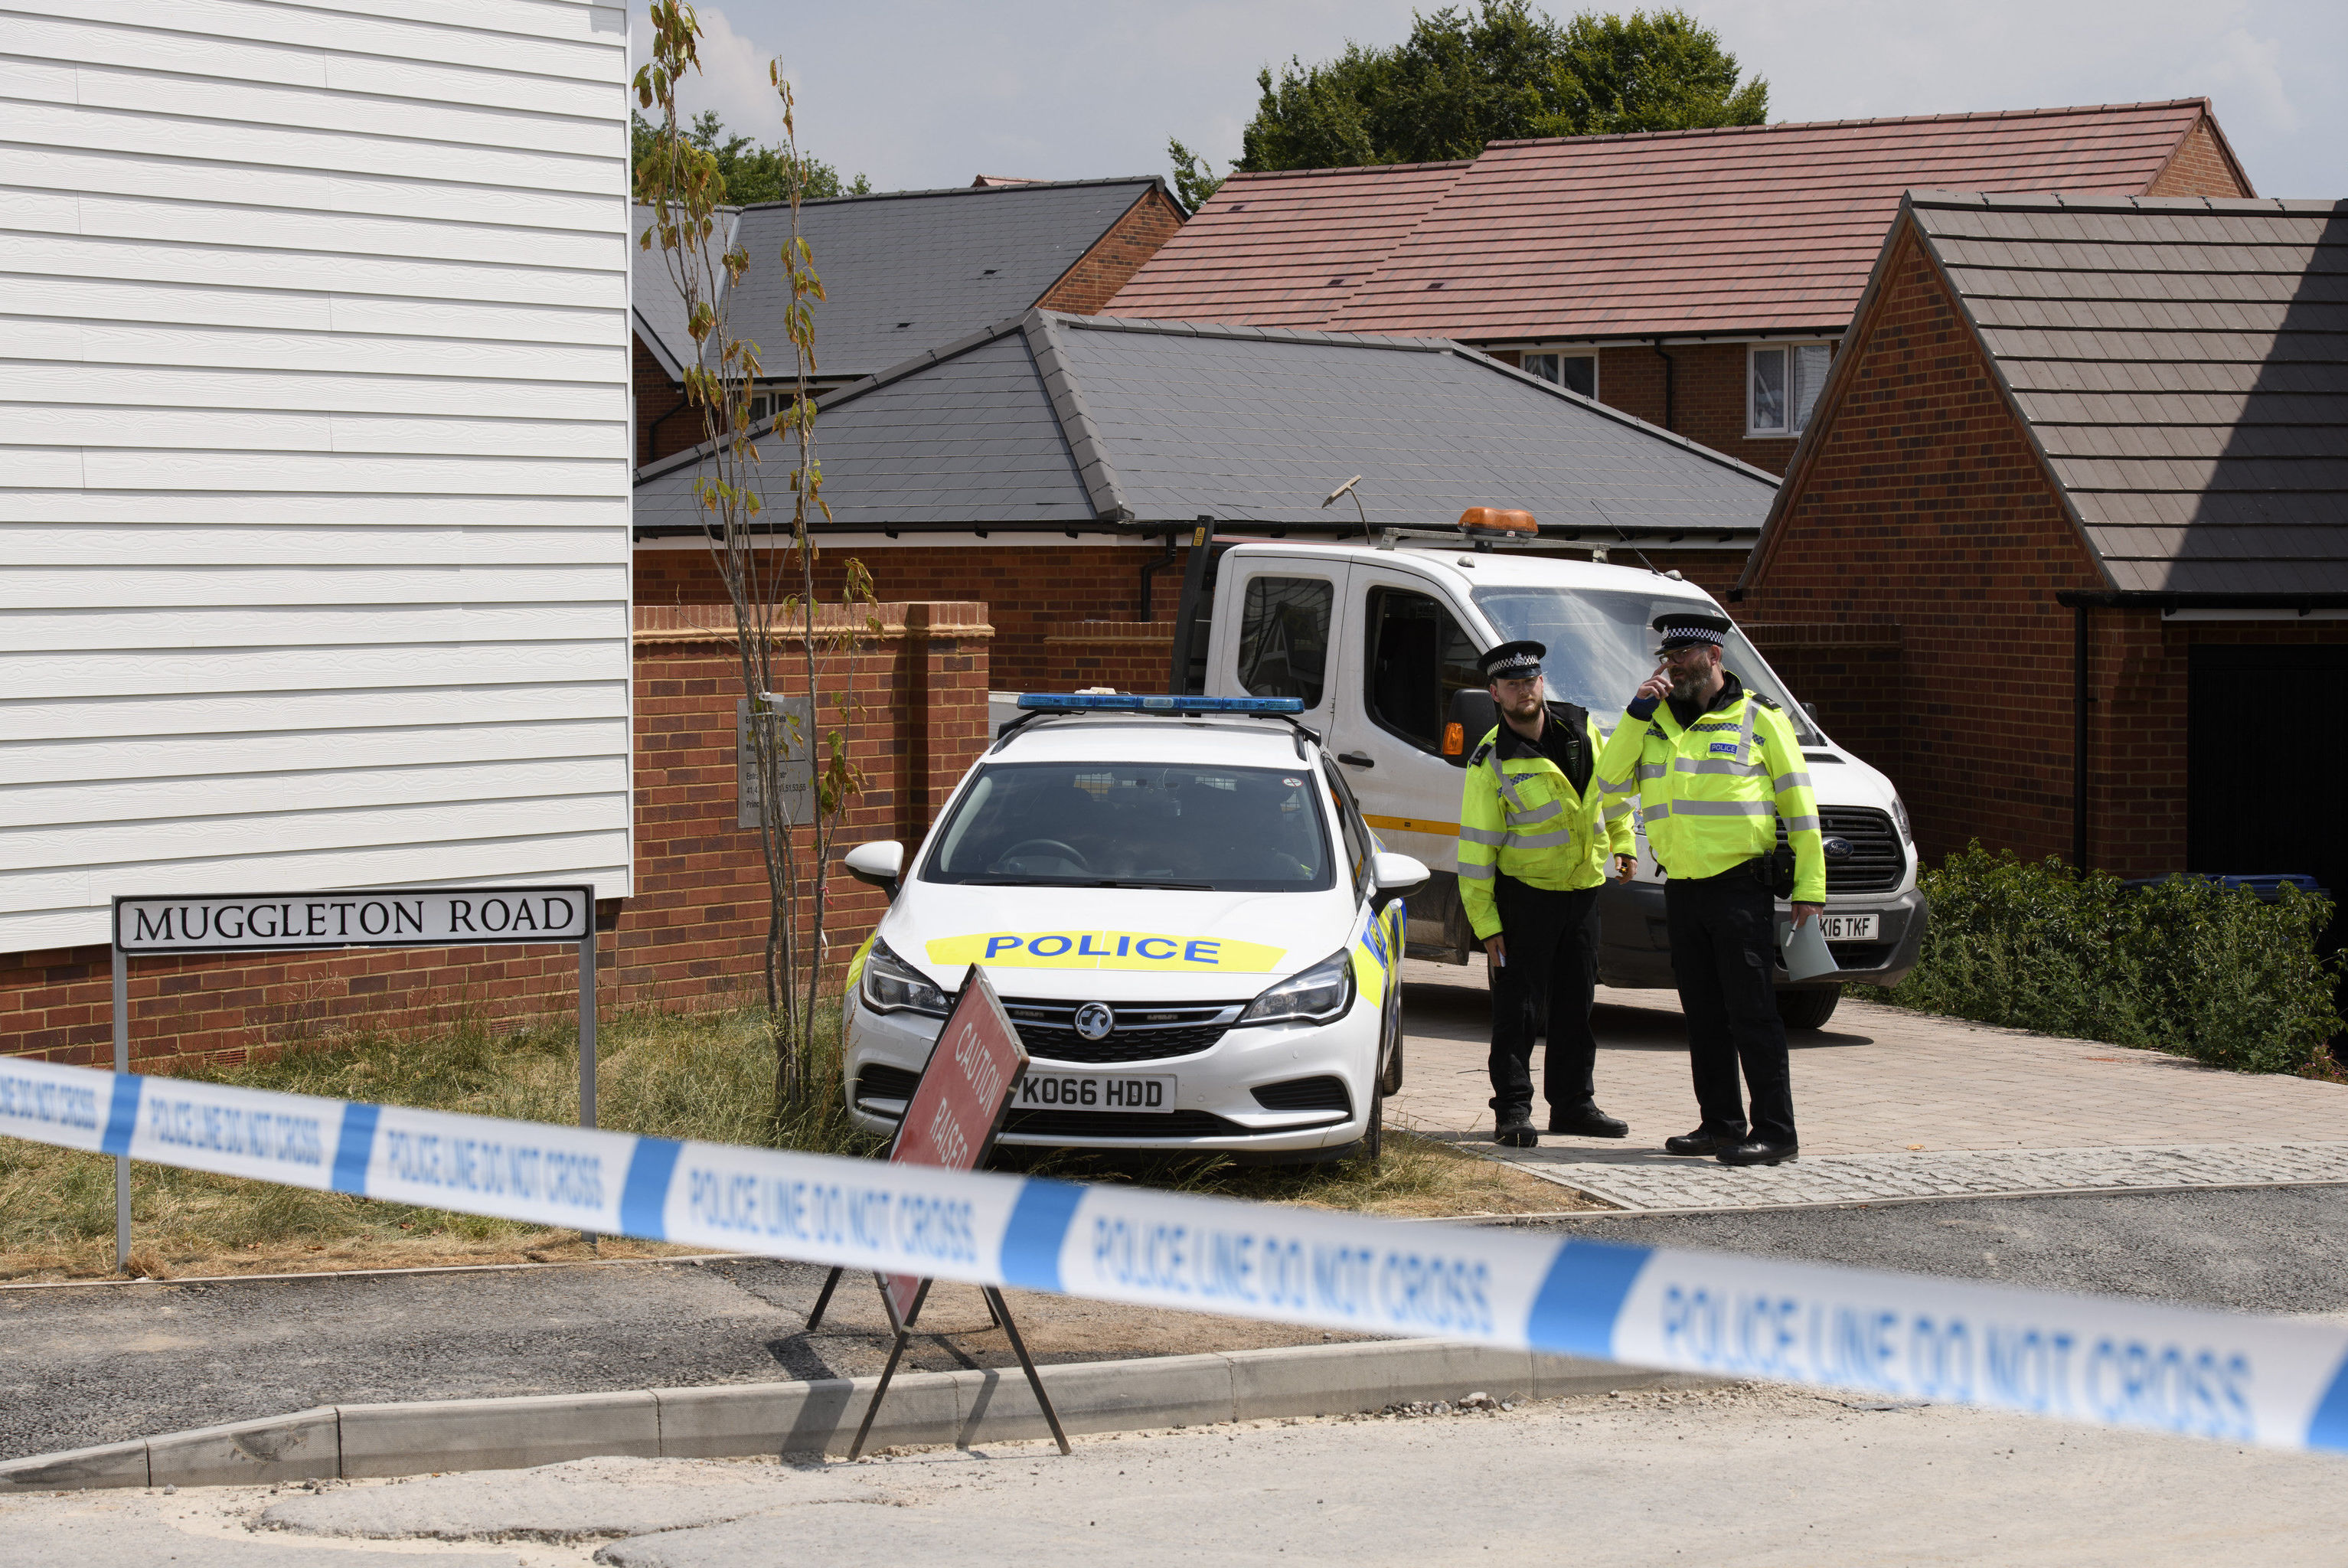 Policemen are outside the nerve agent victim Charlie Rowley in Amesbury, Wiltshire